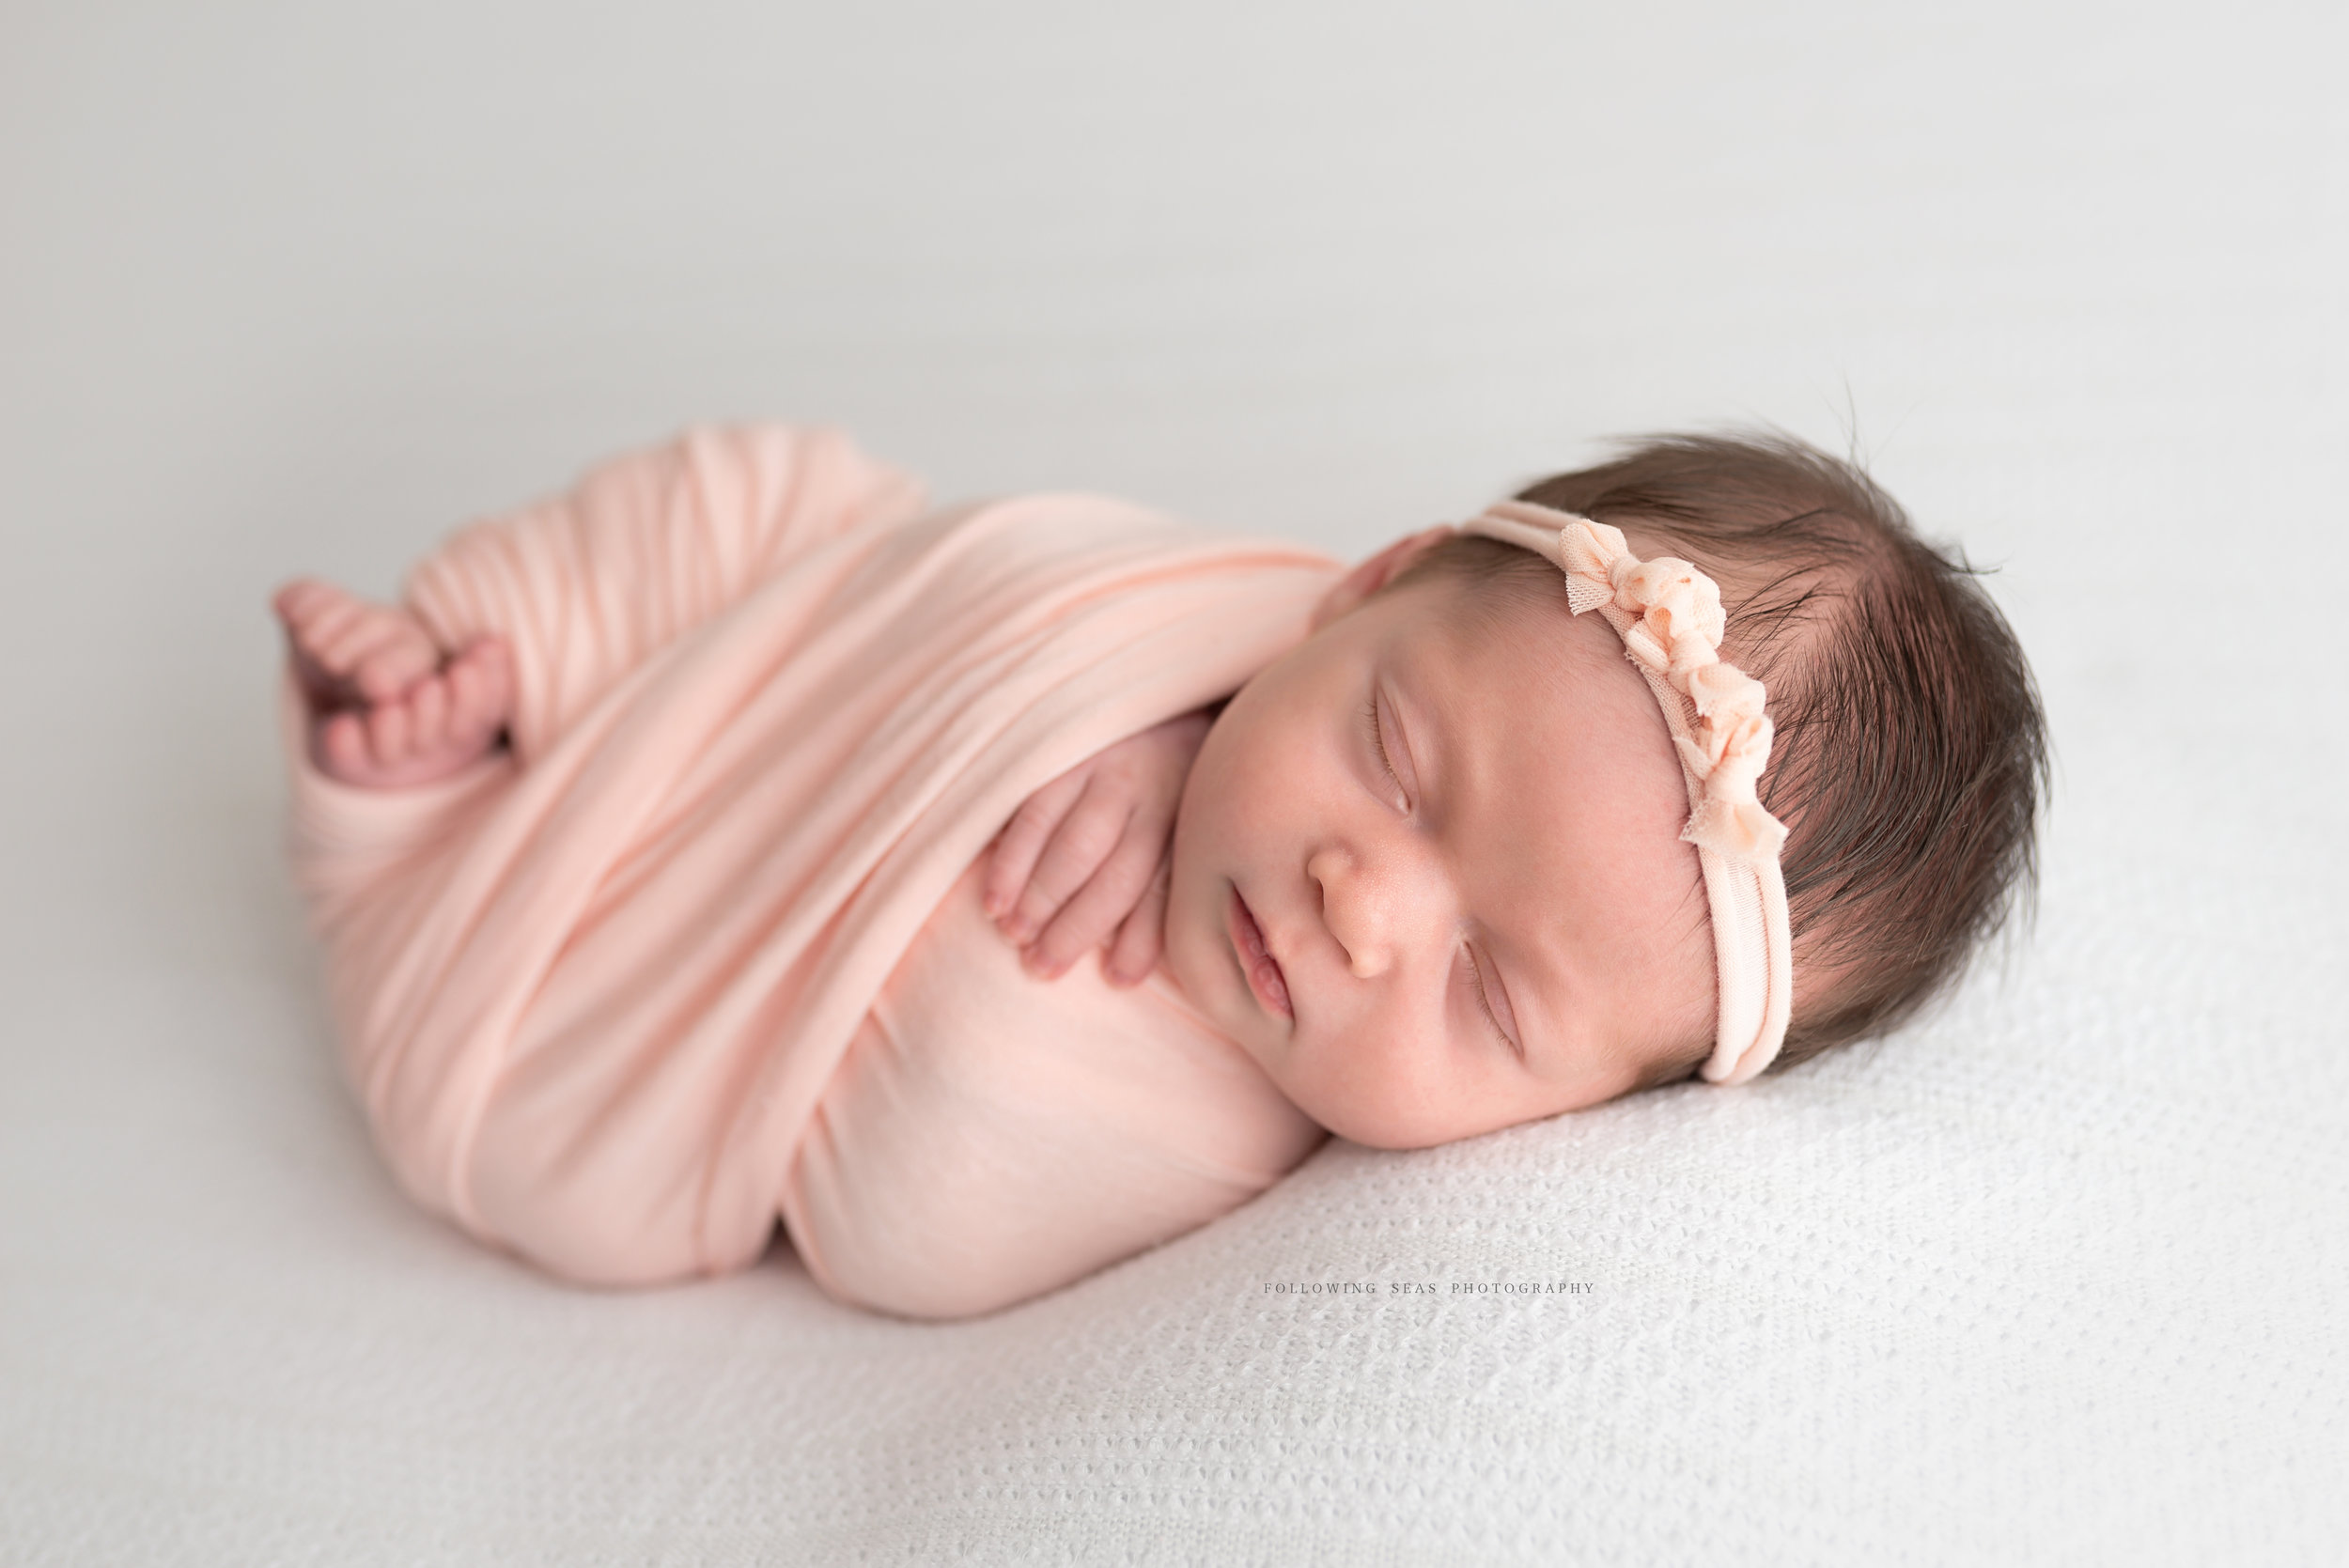 Charleston-Newborn-Photographer-Following-Seas-Photography-FSP_0866.jpg